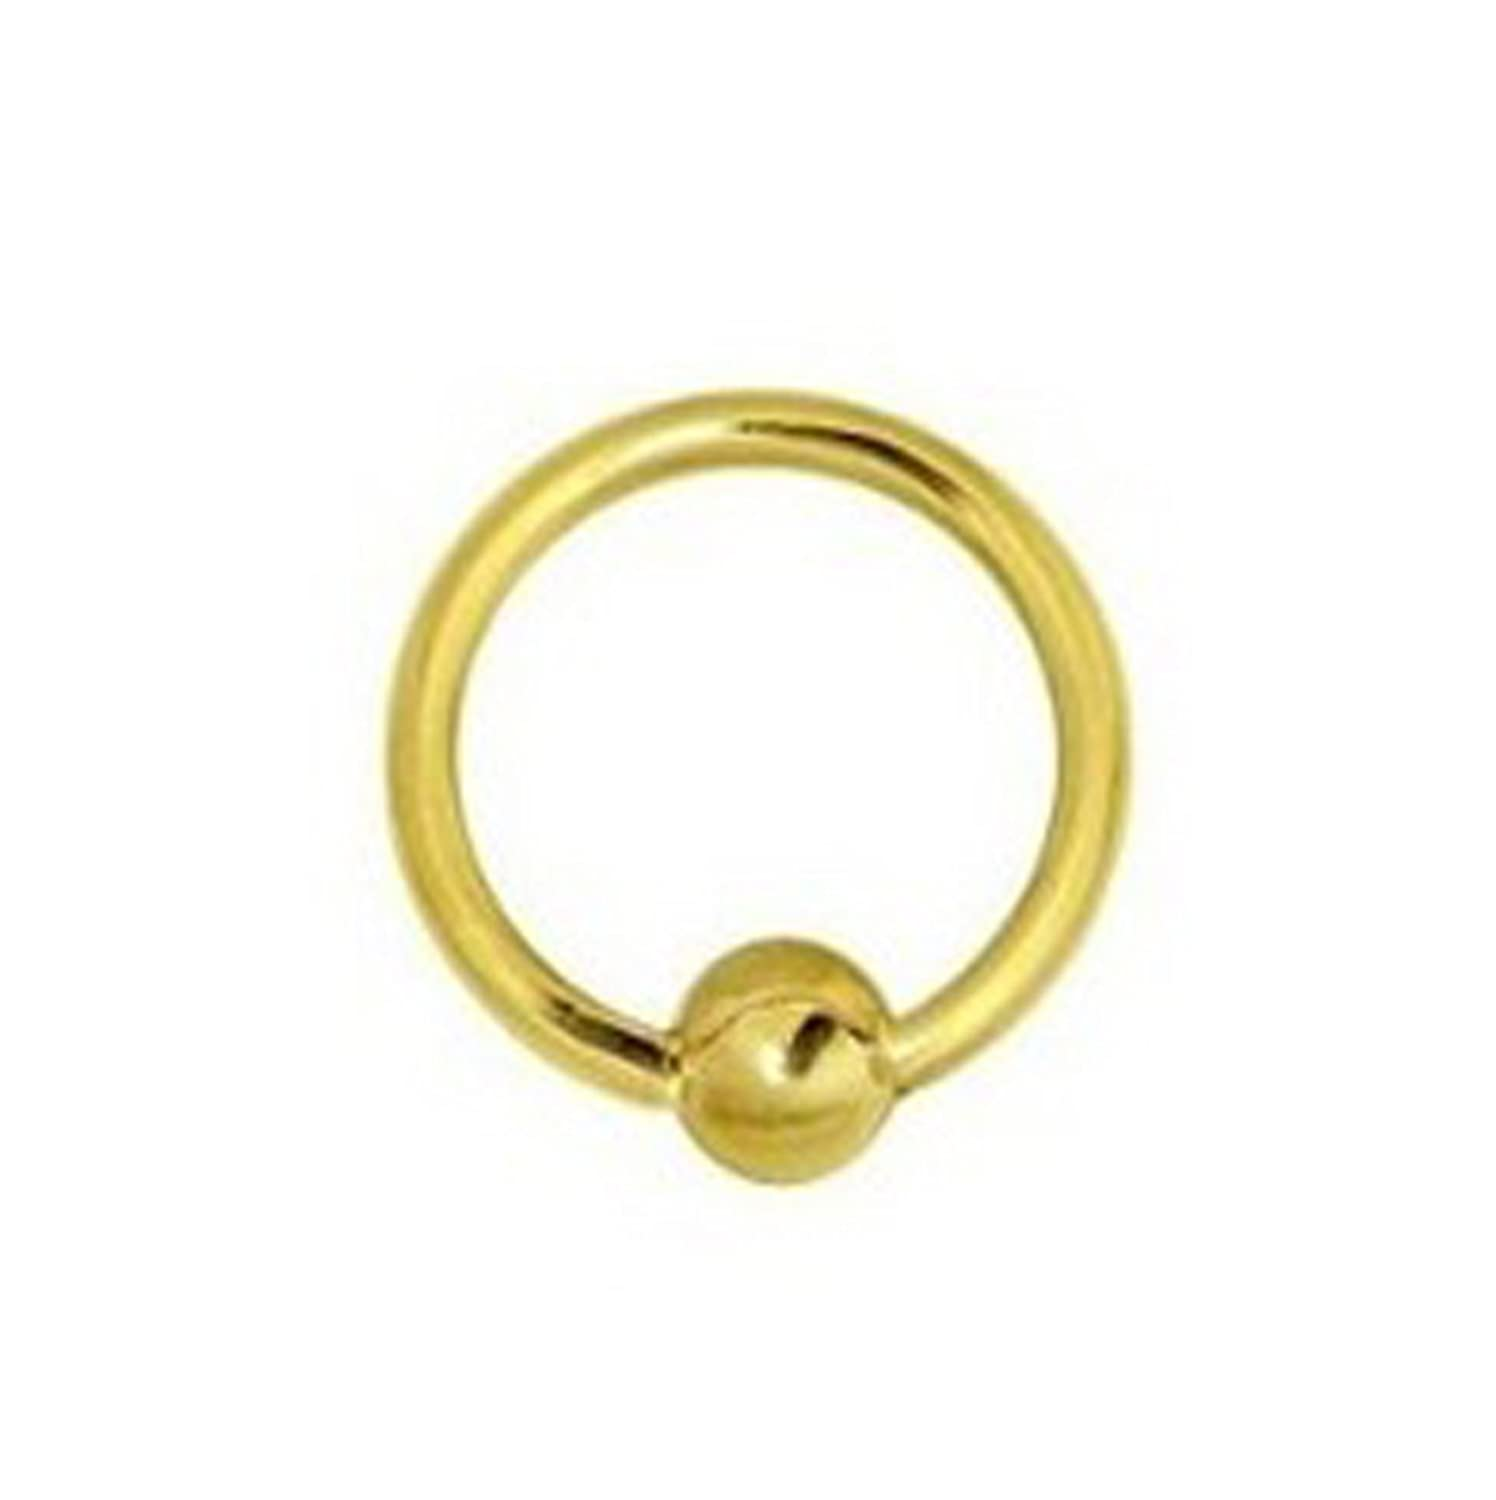 14K Solid Yellow Gold Nipple Captive Ball Closure Bead Ring Body